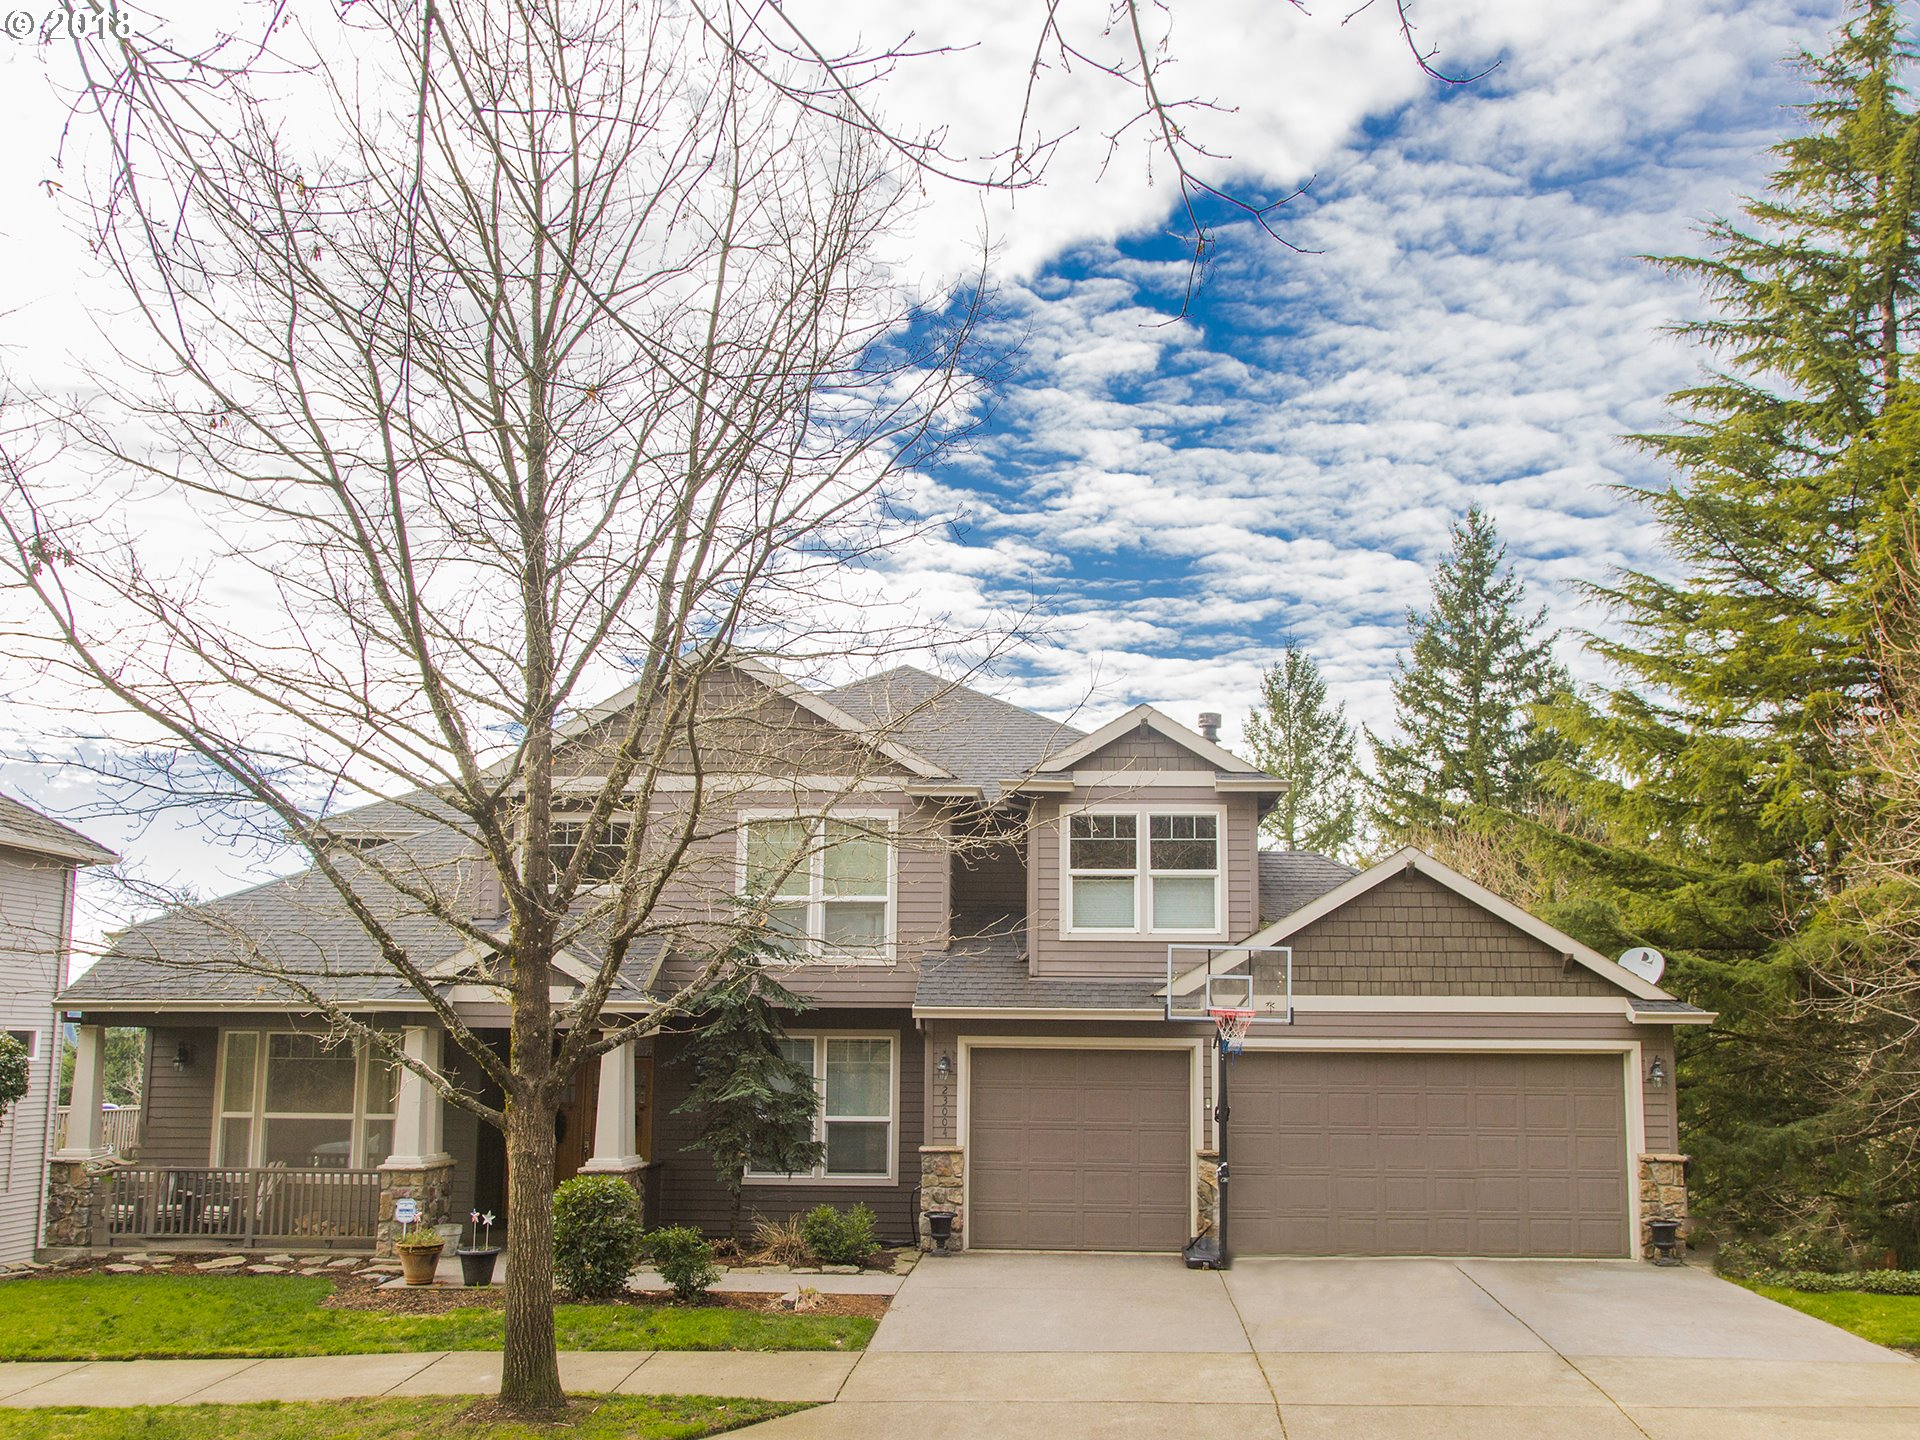 23004 BLAND CIR, West Linn, OR 97068